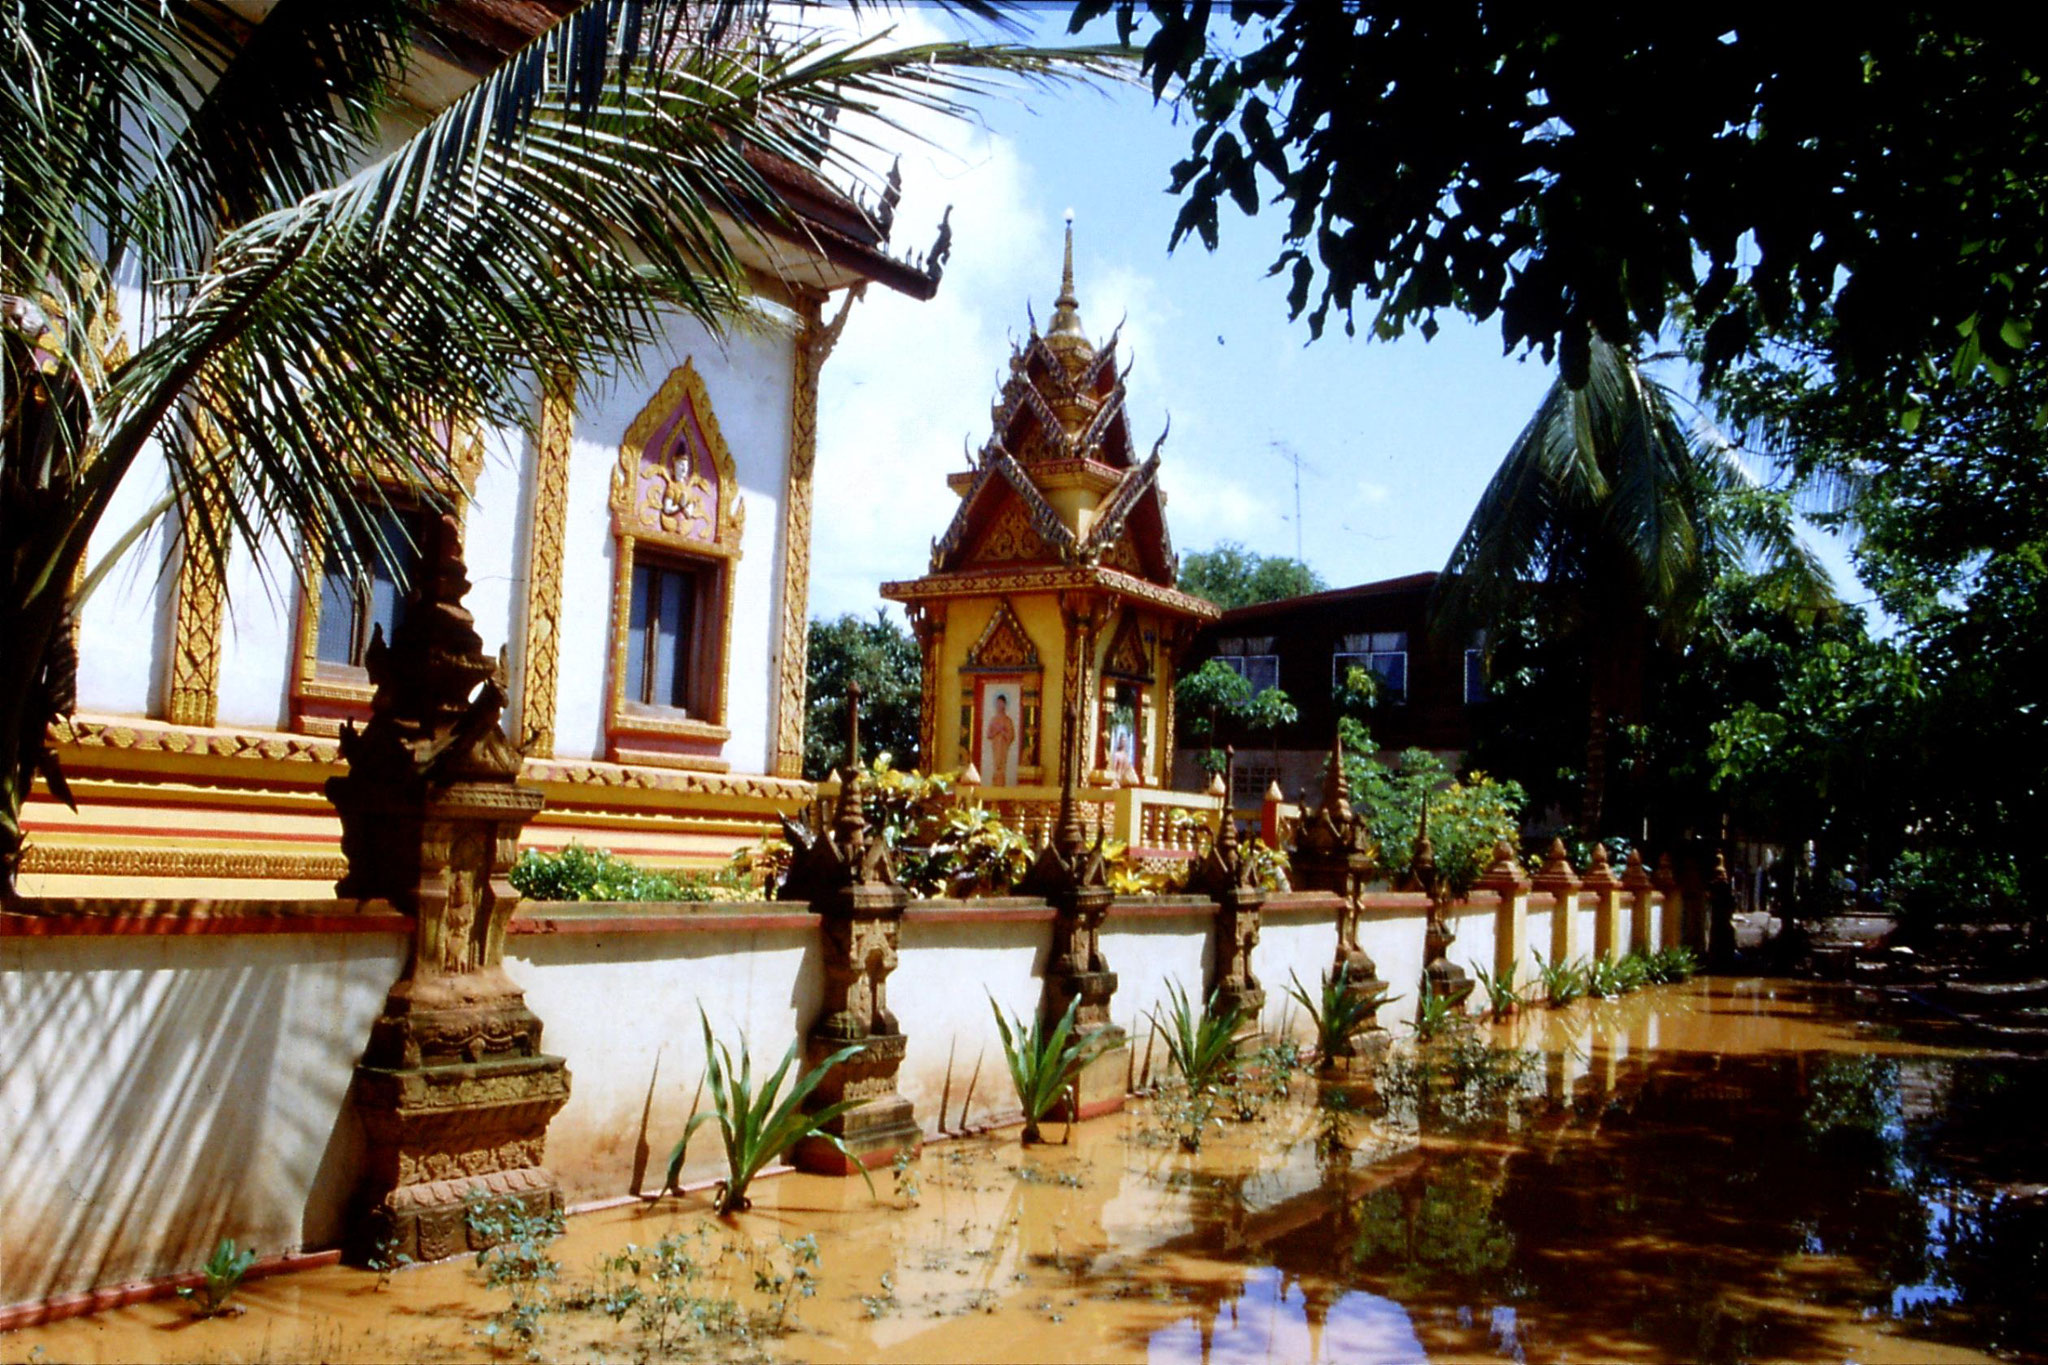 30/5/1990: 22: village east of Nong Khai